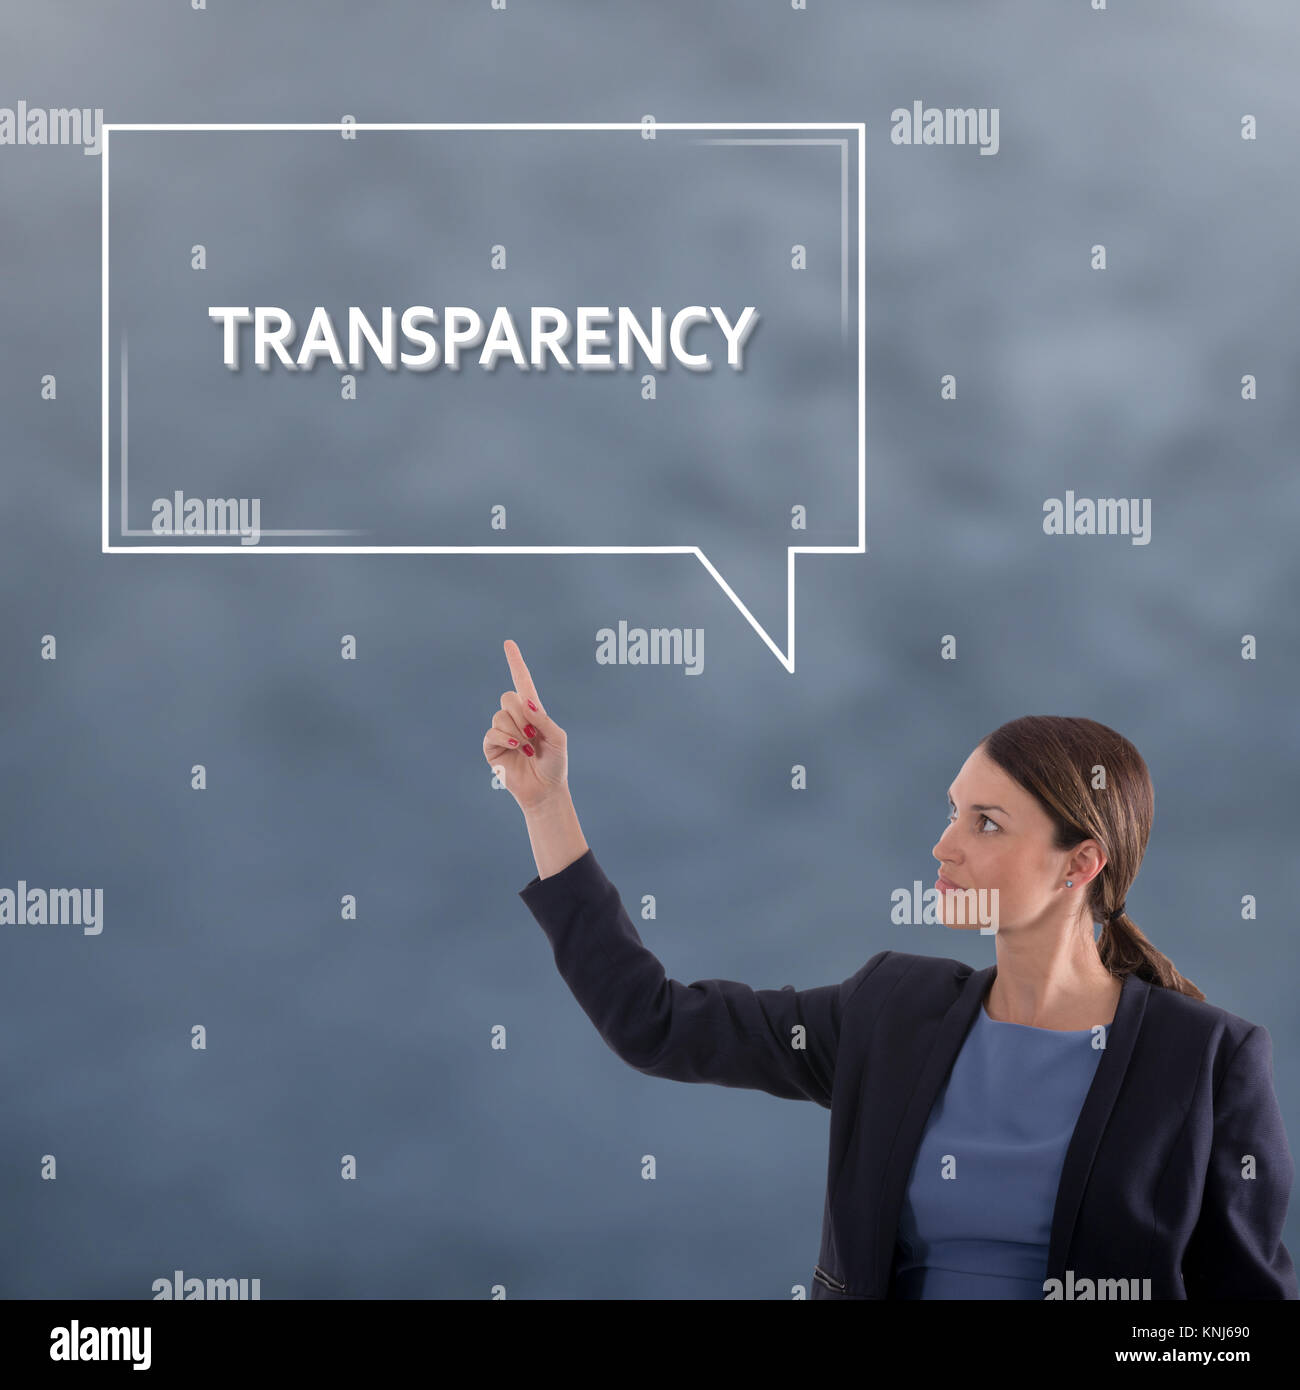 TRANSPARENCY Business Concept. Business Woman Graphic Concept - Stock Image